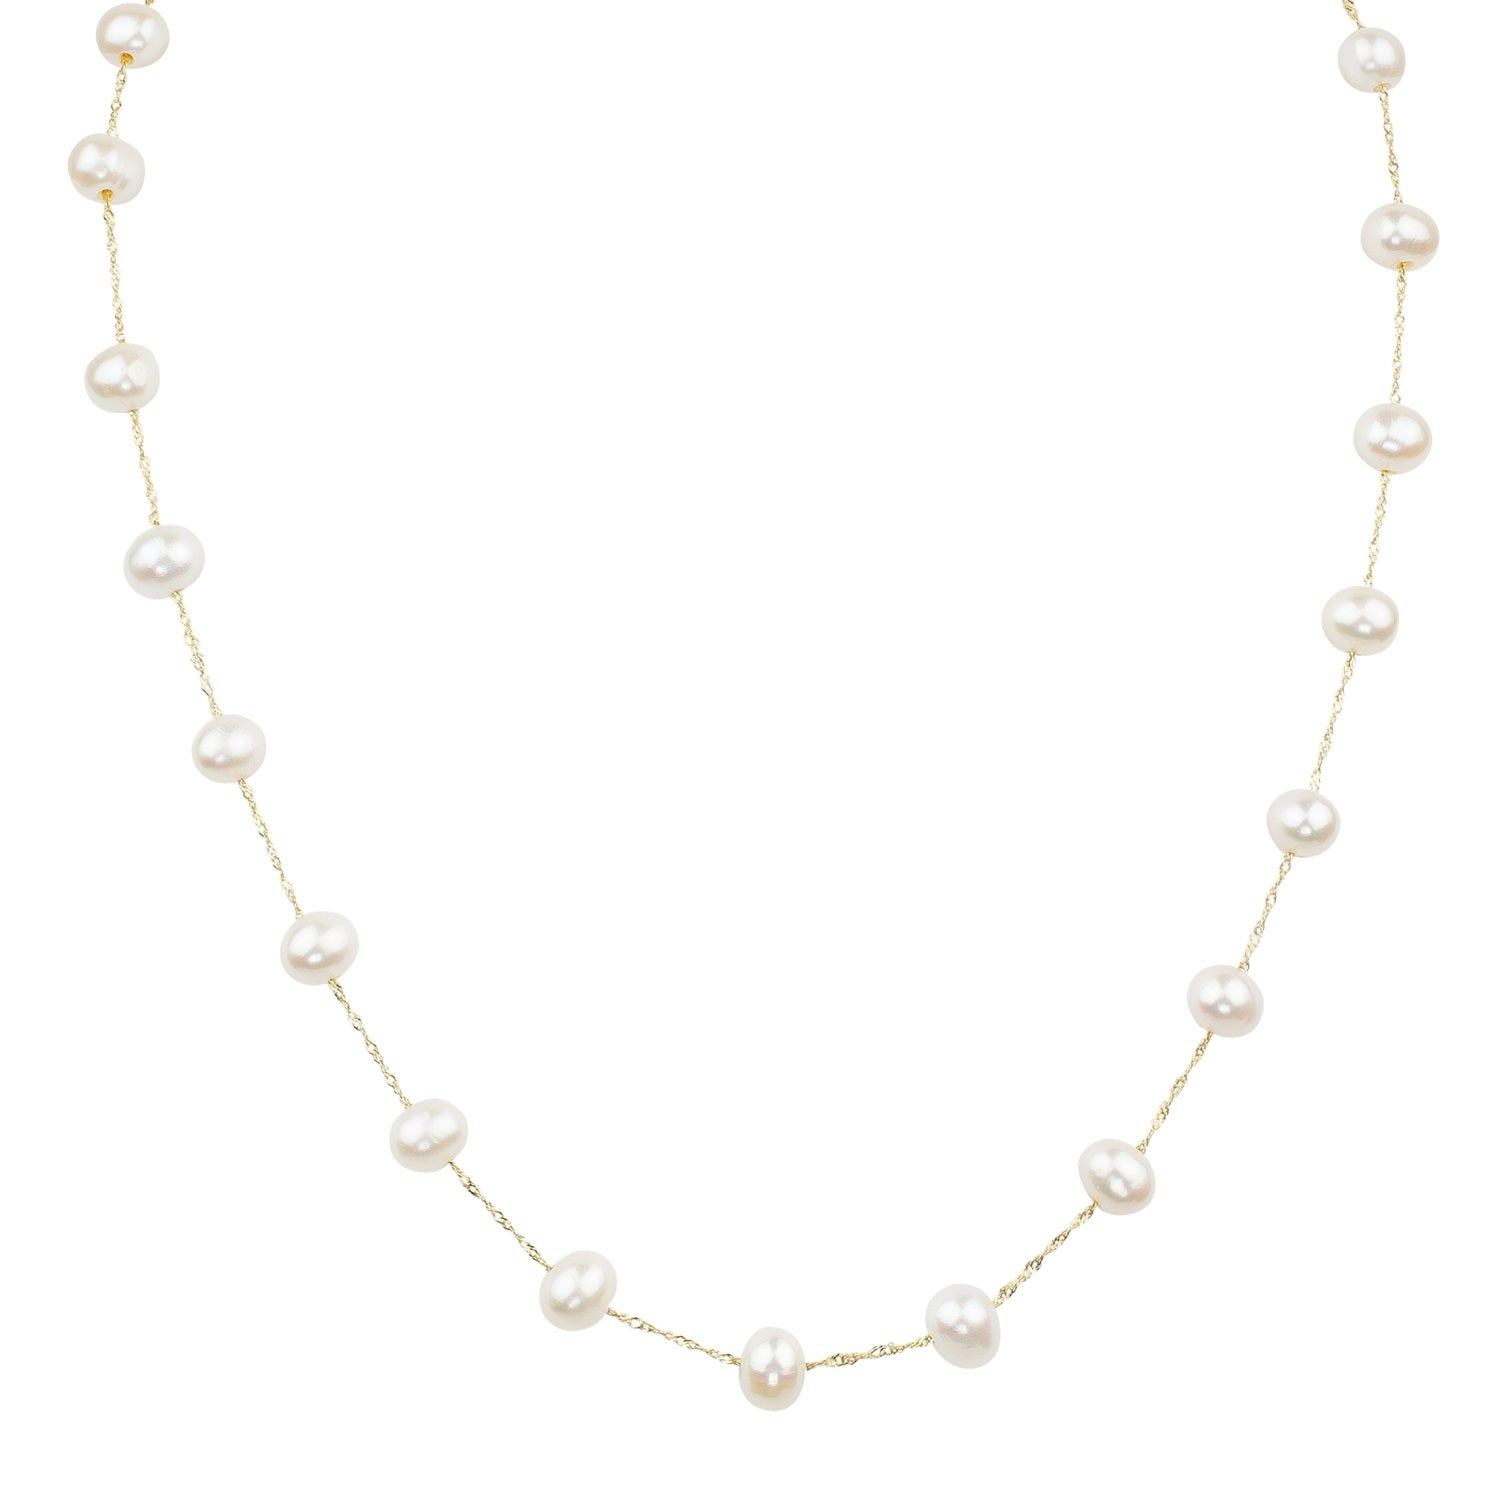 14k Yellow Gold and White Freshwater Pearl Station Necklace